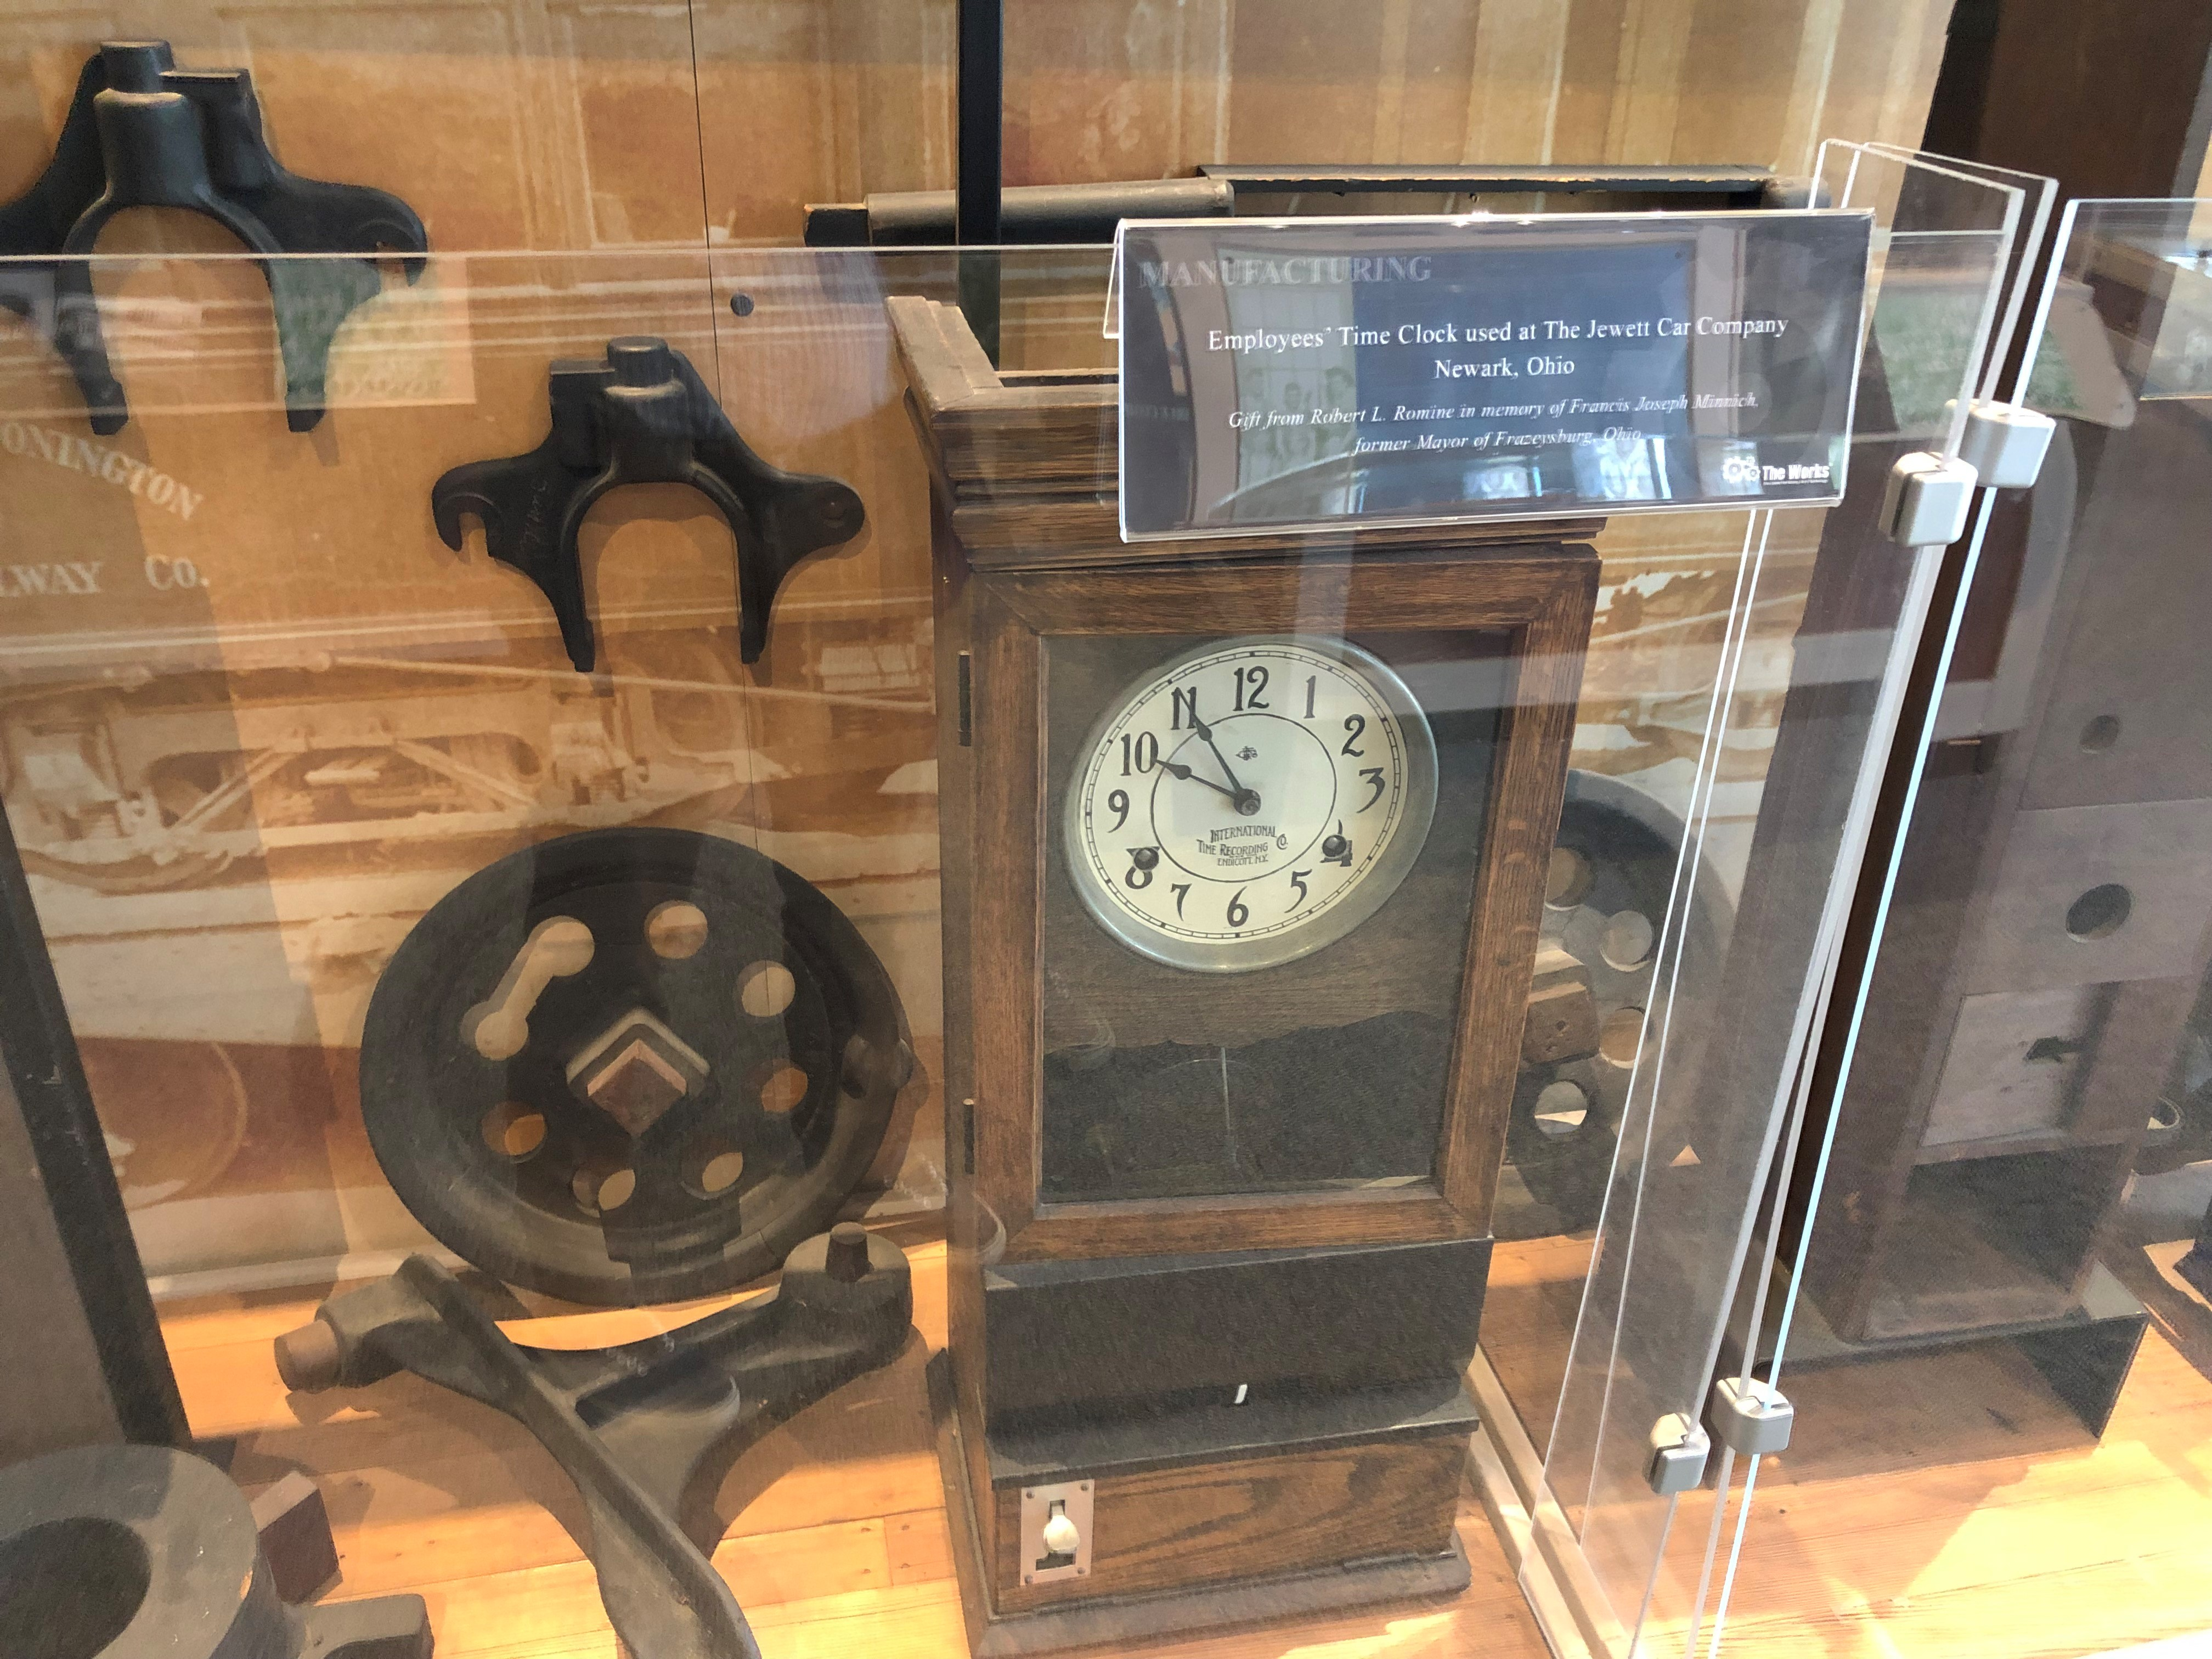 Workers at the Jewett Car Company used this time clock to punch in and out for their shifts.